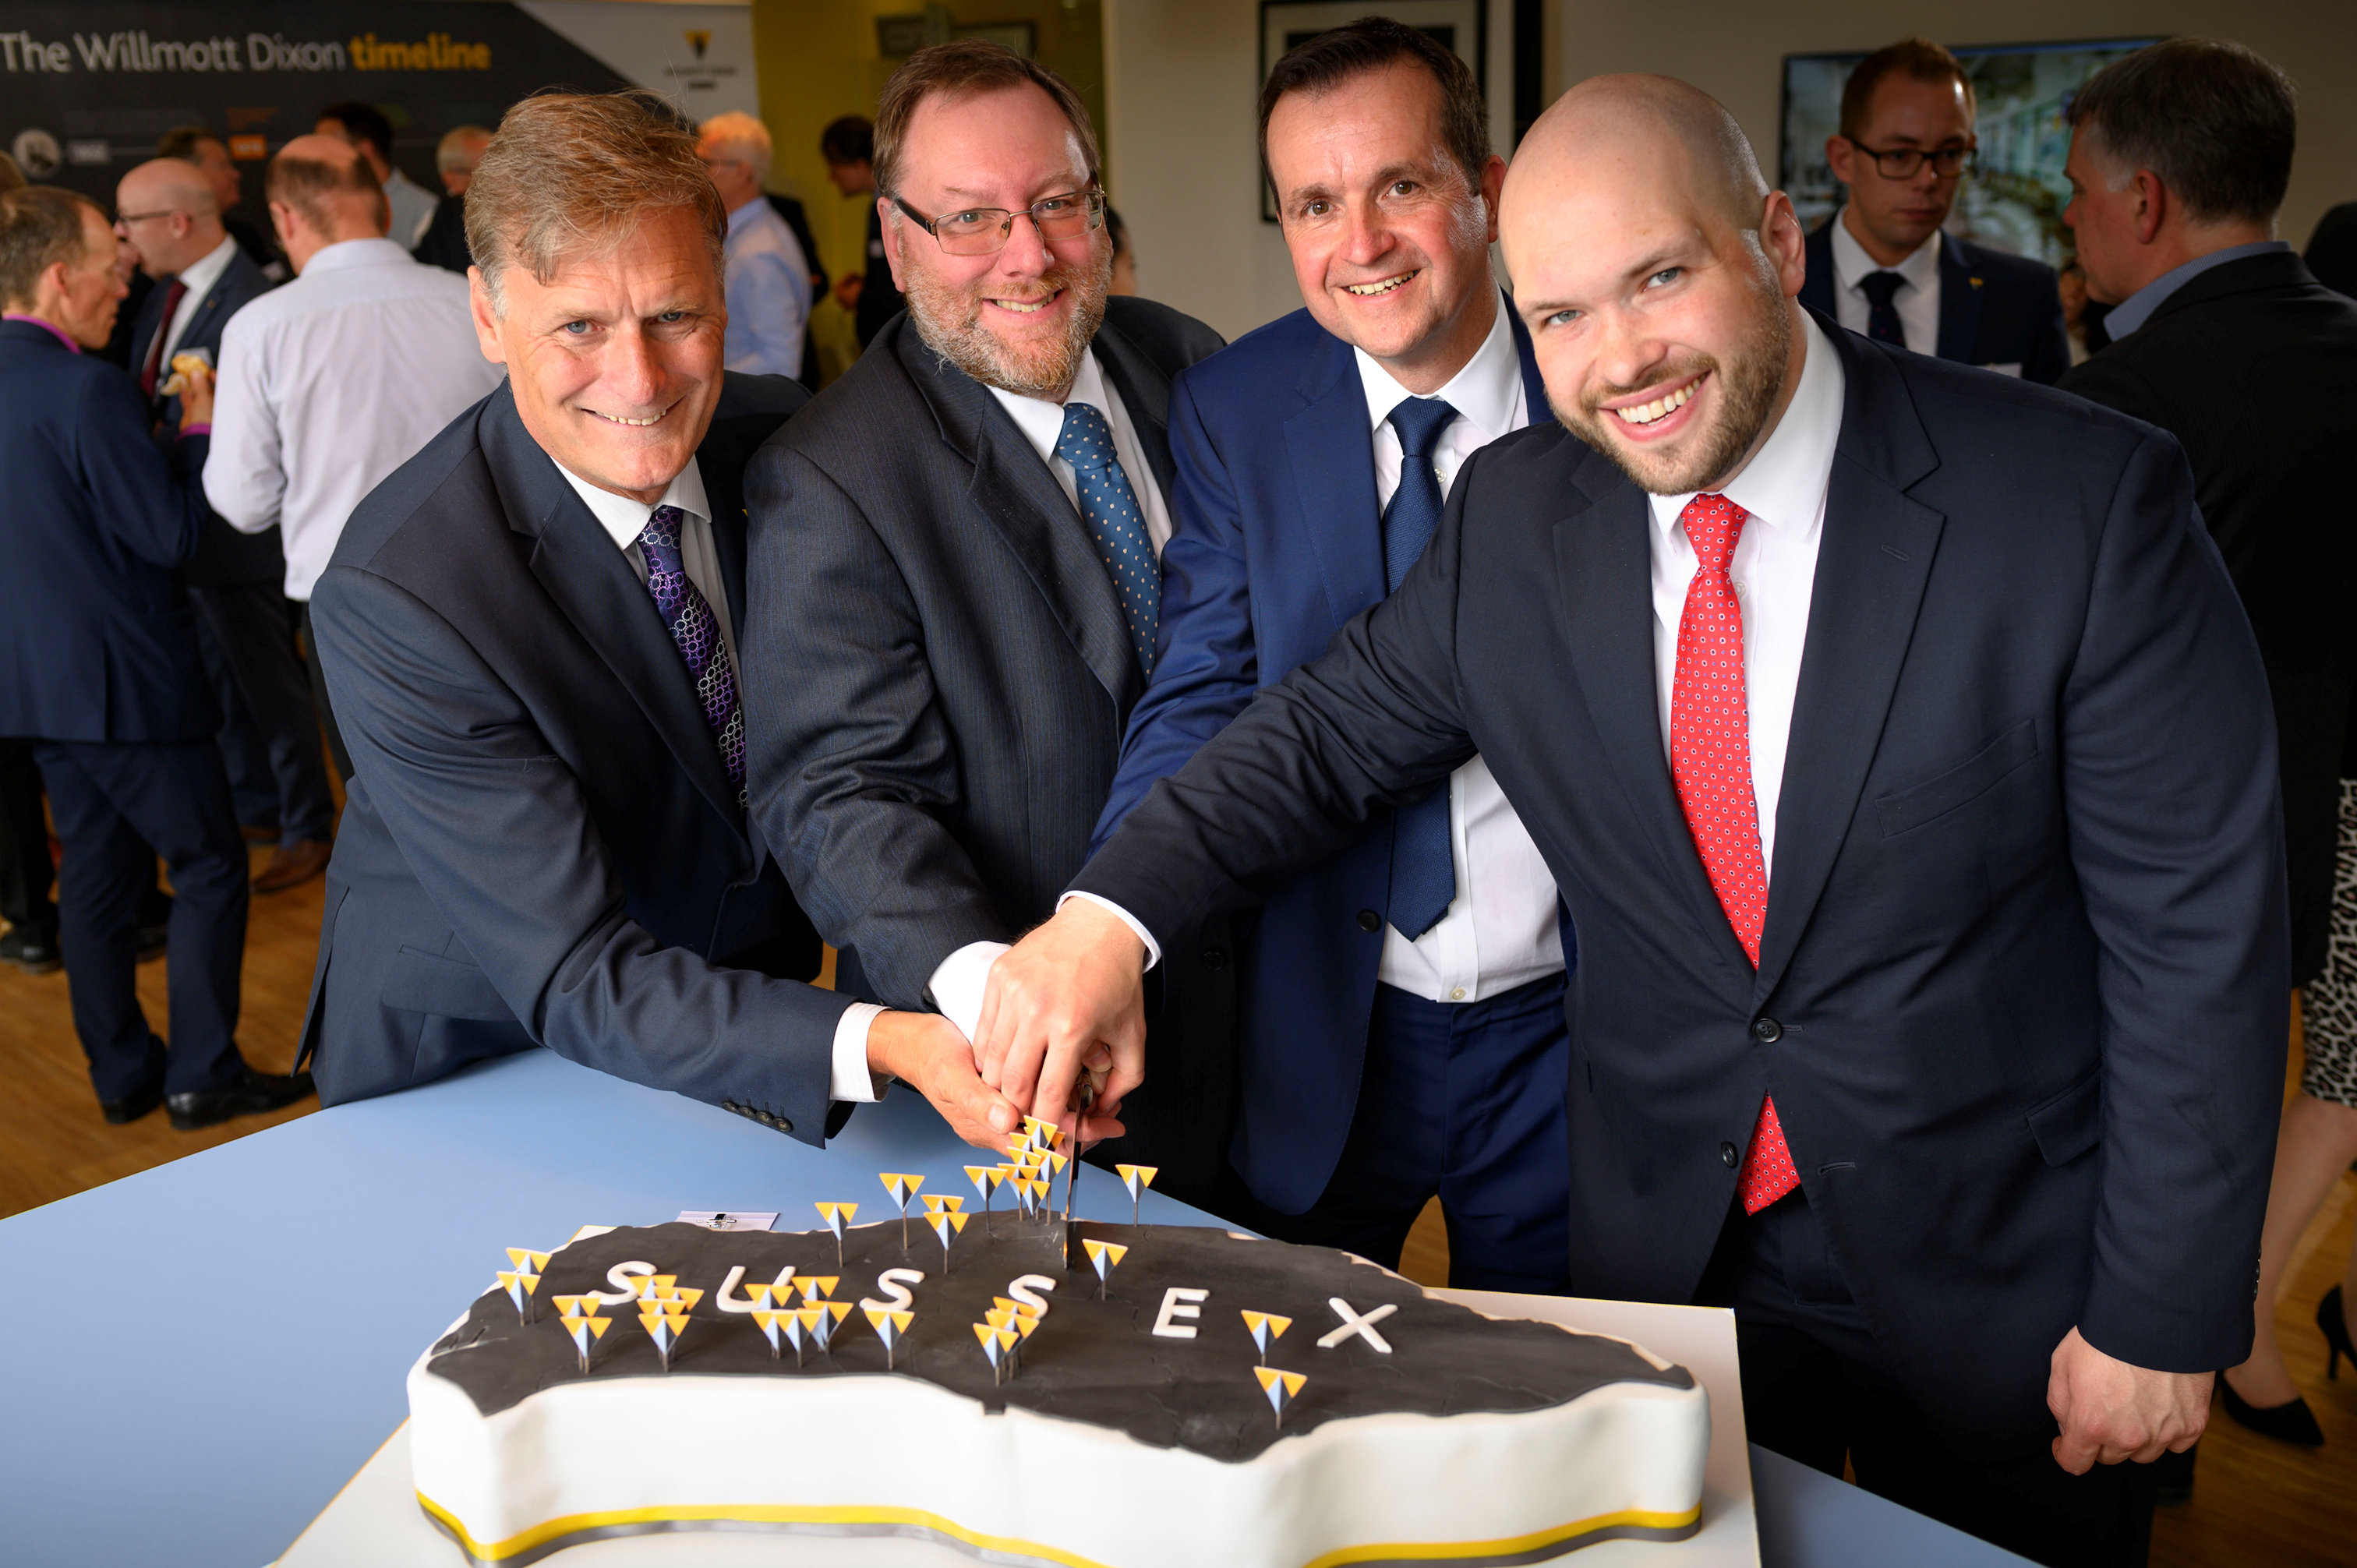 Sussex office opening - May 2019 - cake.jpg